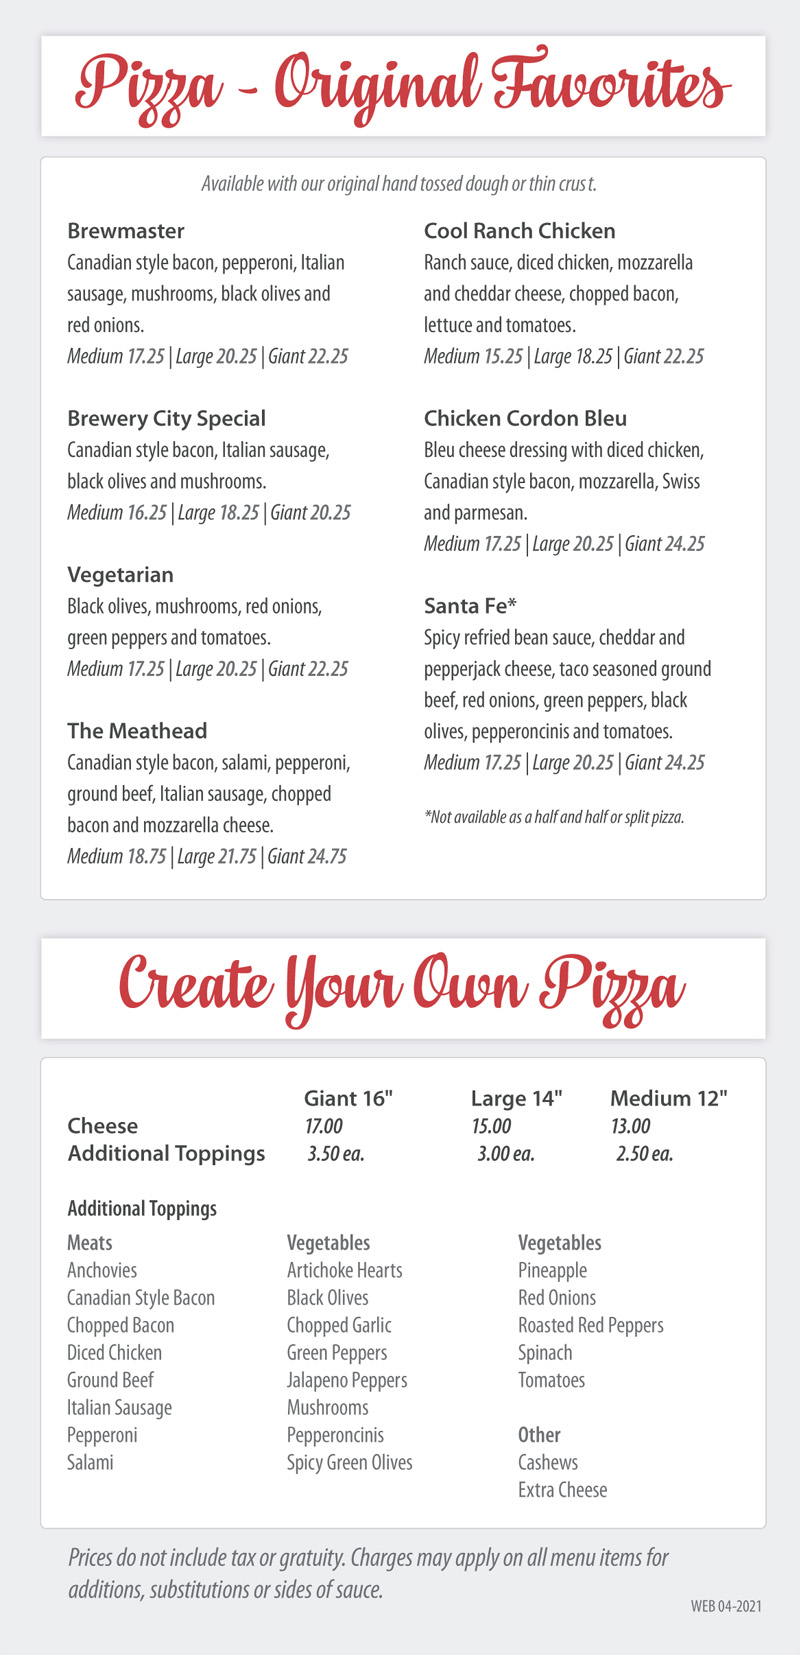 Pizza Original Favs and Create Your Own